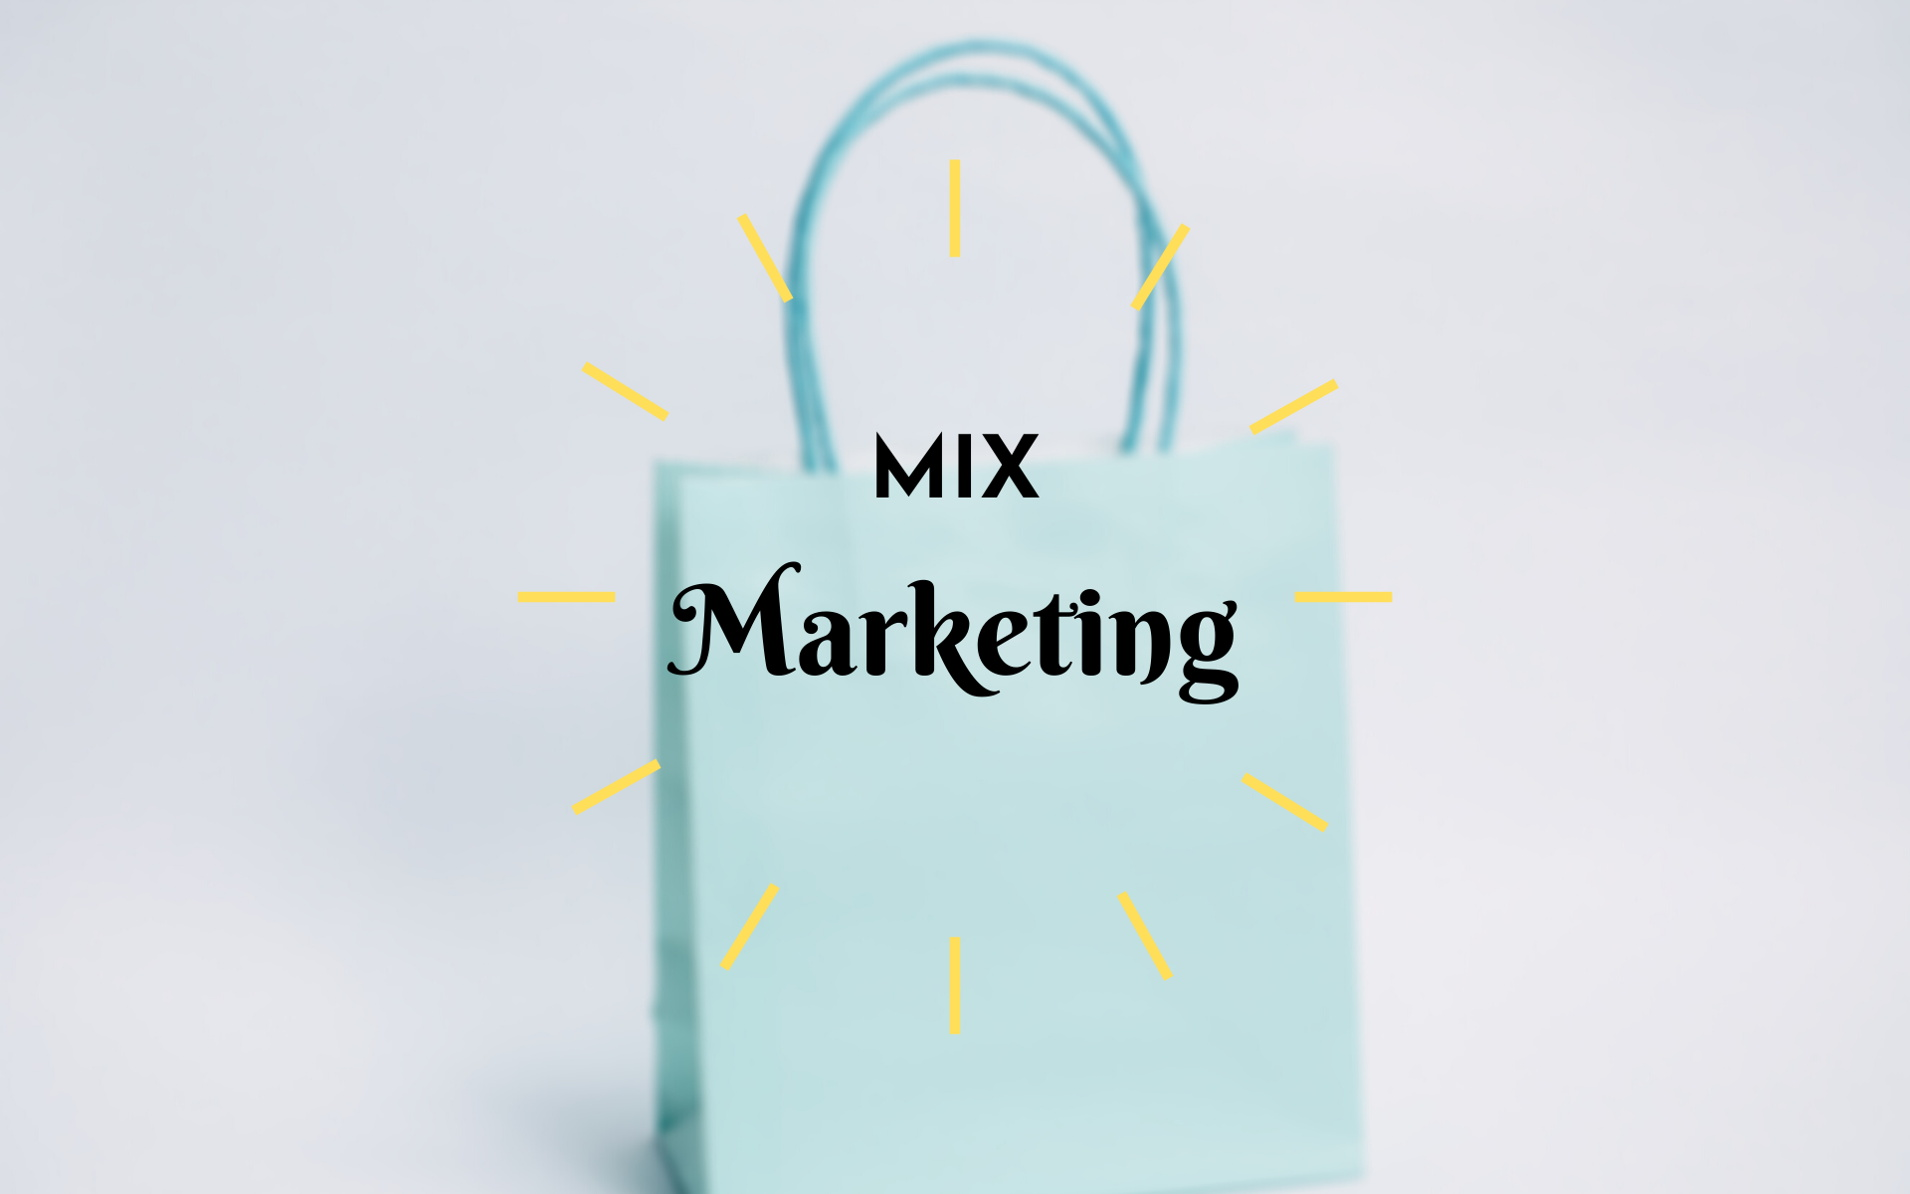 Comprendre le mix marketing